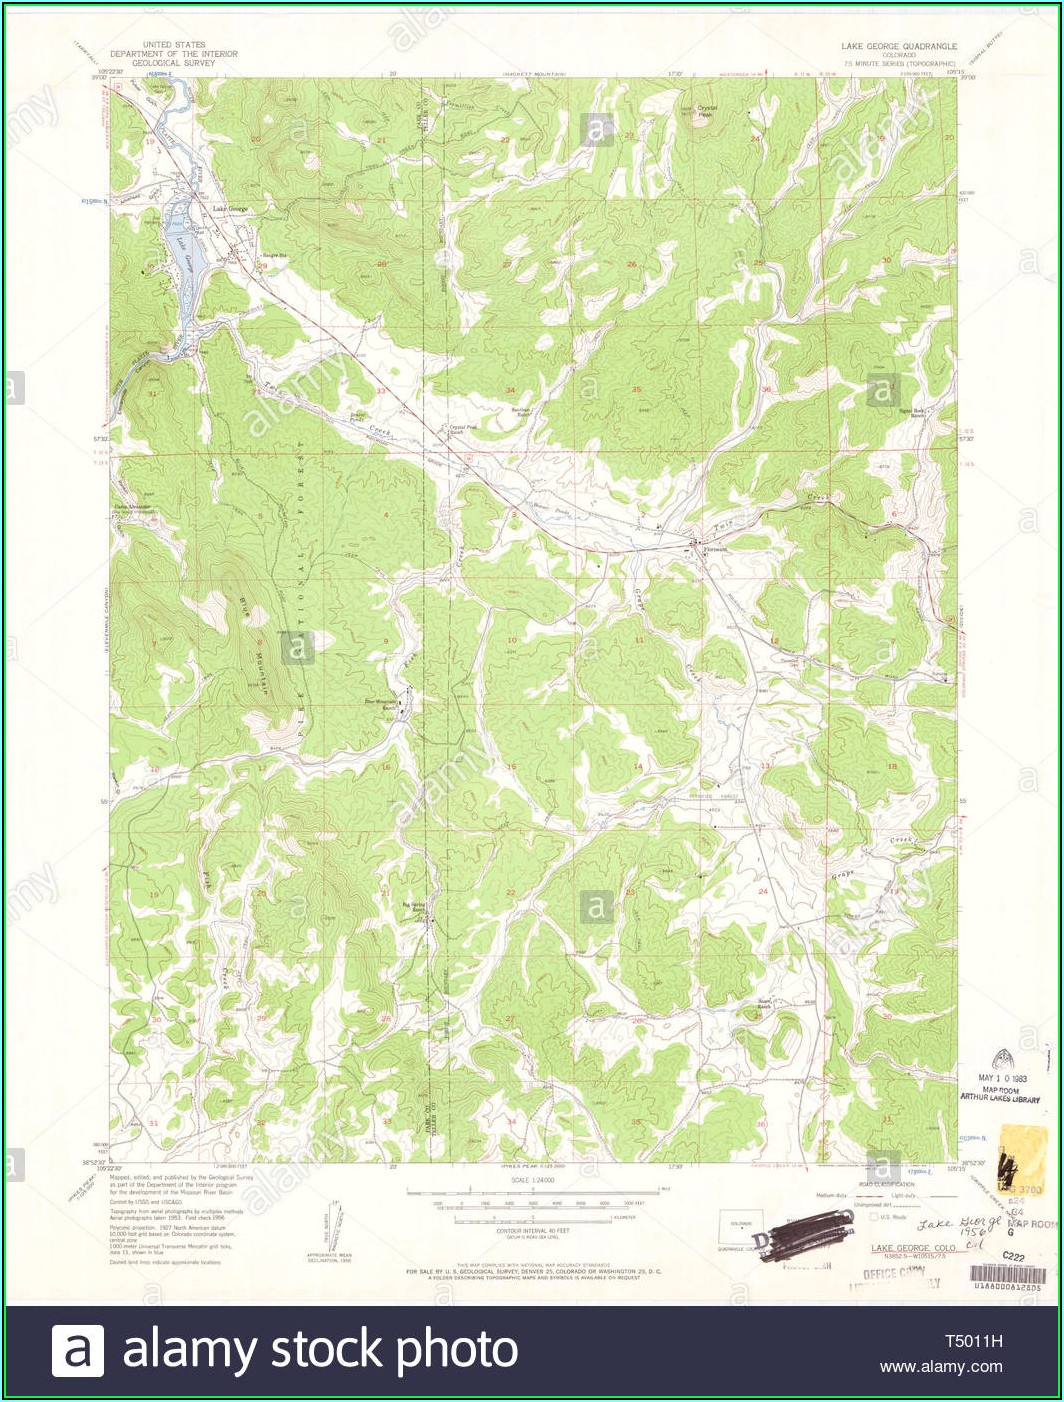 Lake George Topo Map